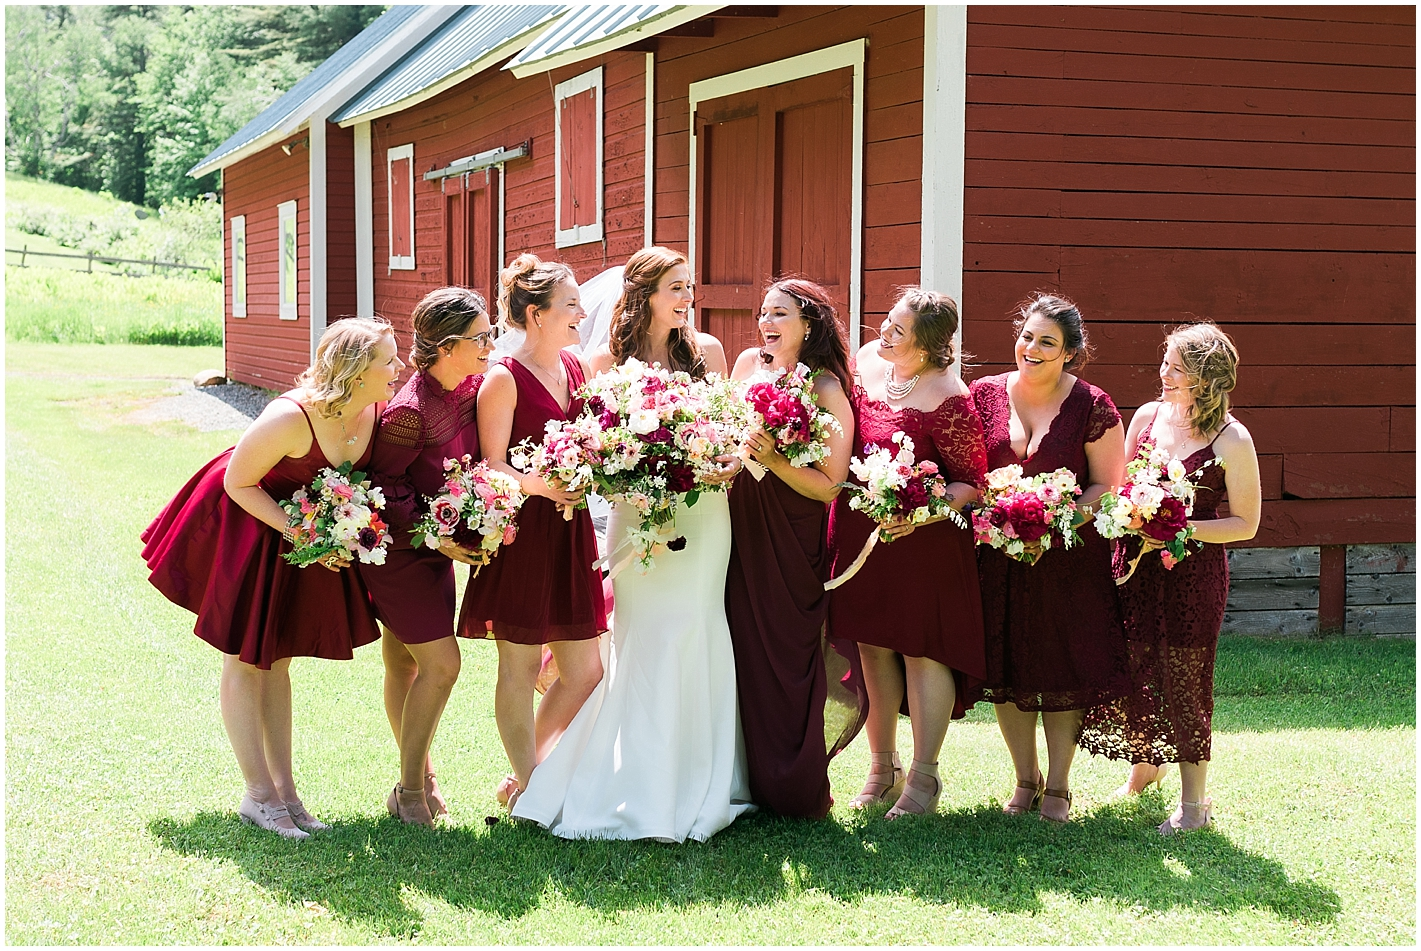 Bridesmaids Photos by Alyssa Parker Photography